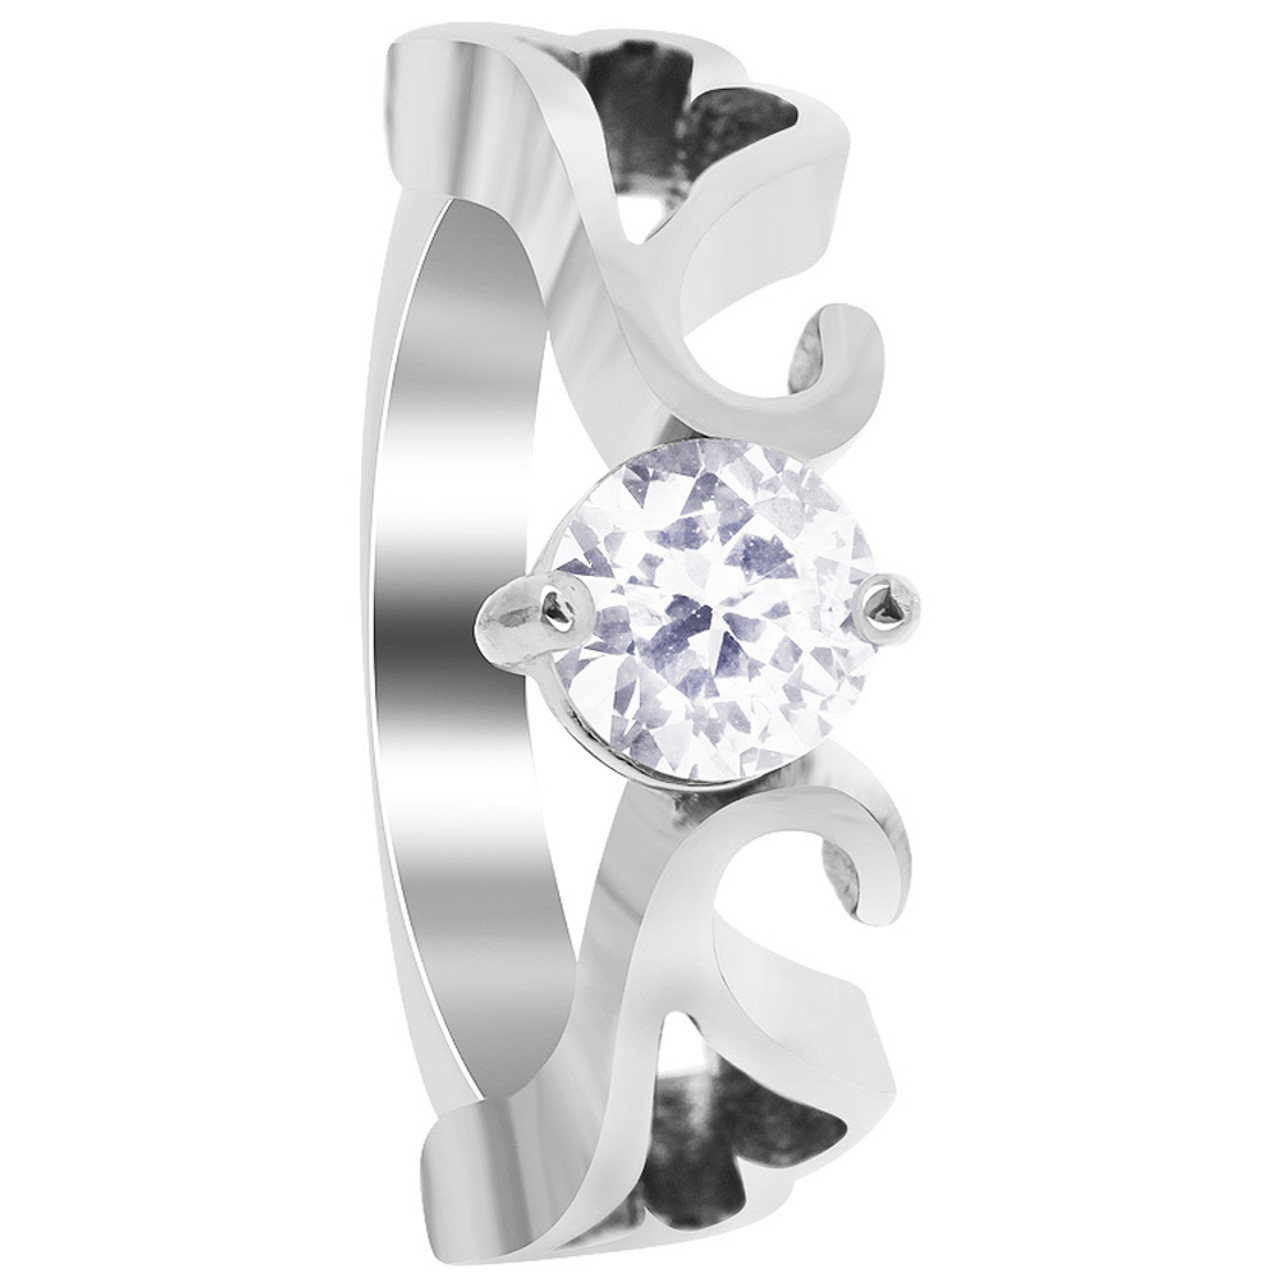 Stainless Steel Heart Swirl Design with Cubic Zirconia Ring